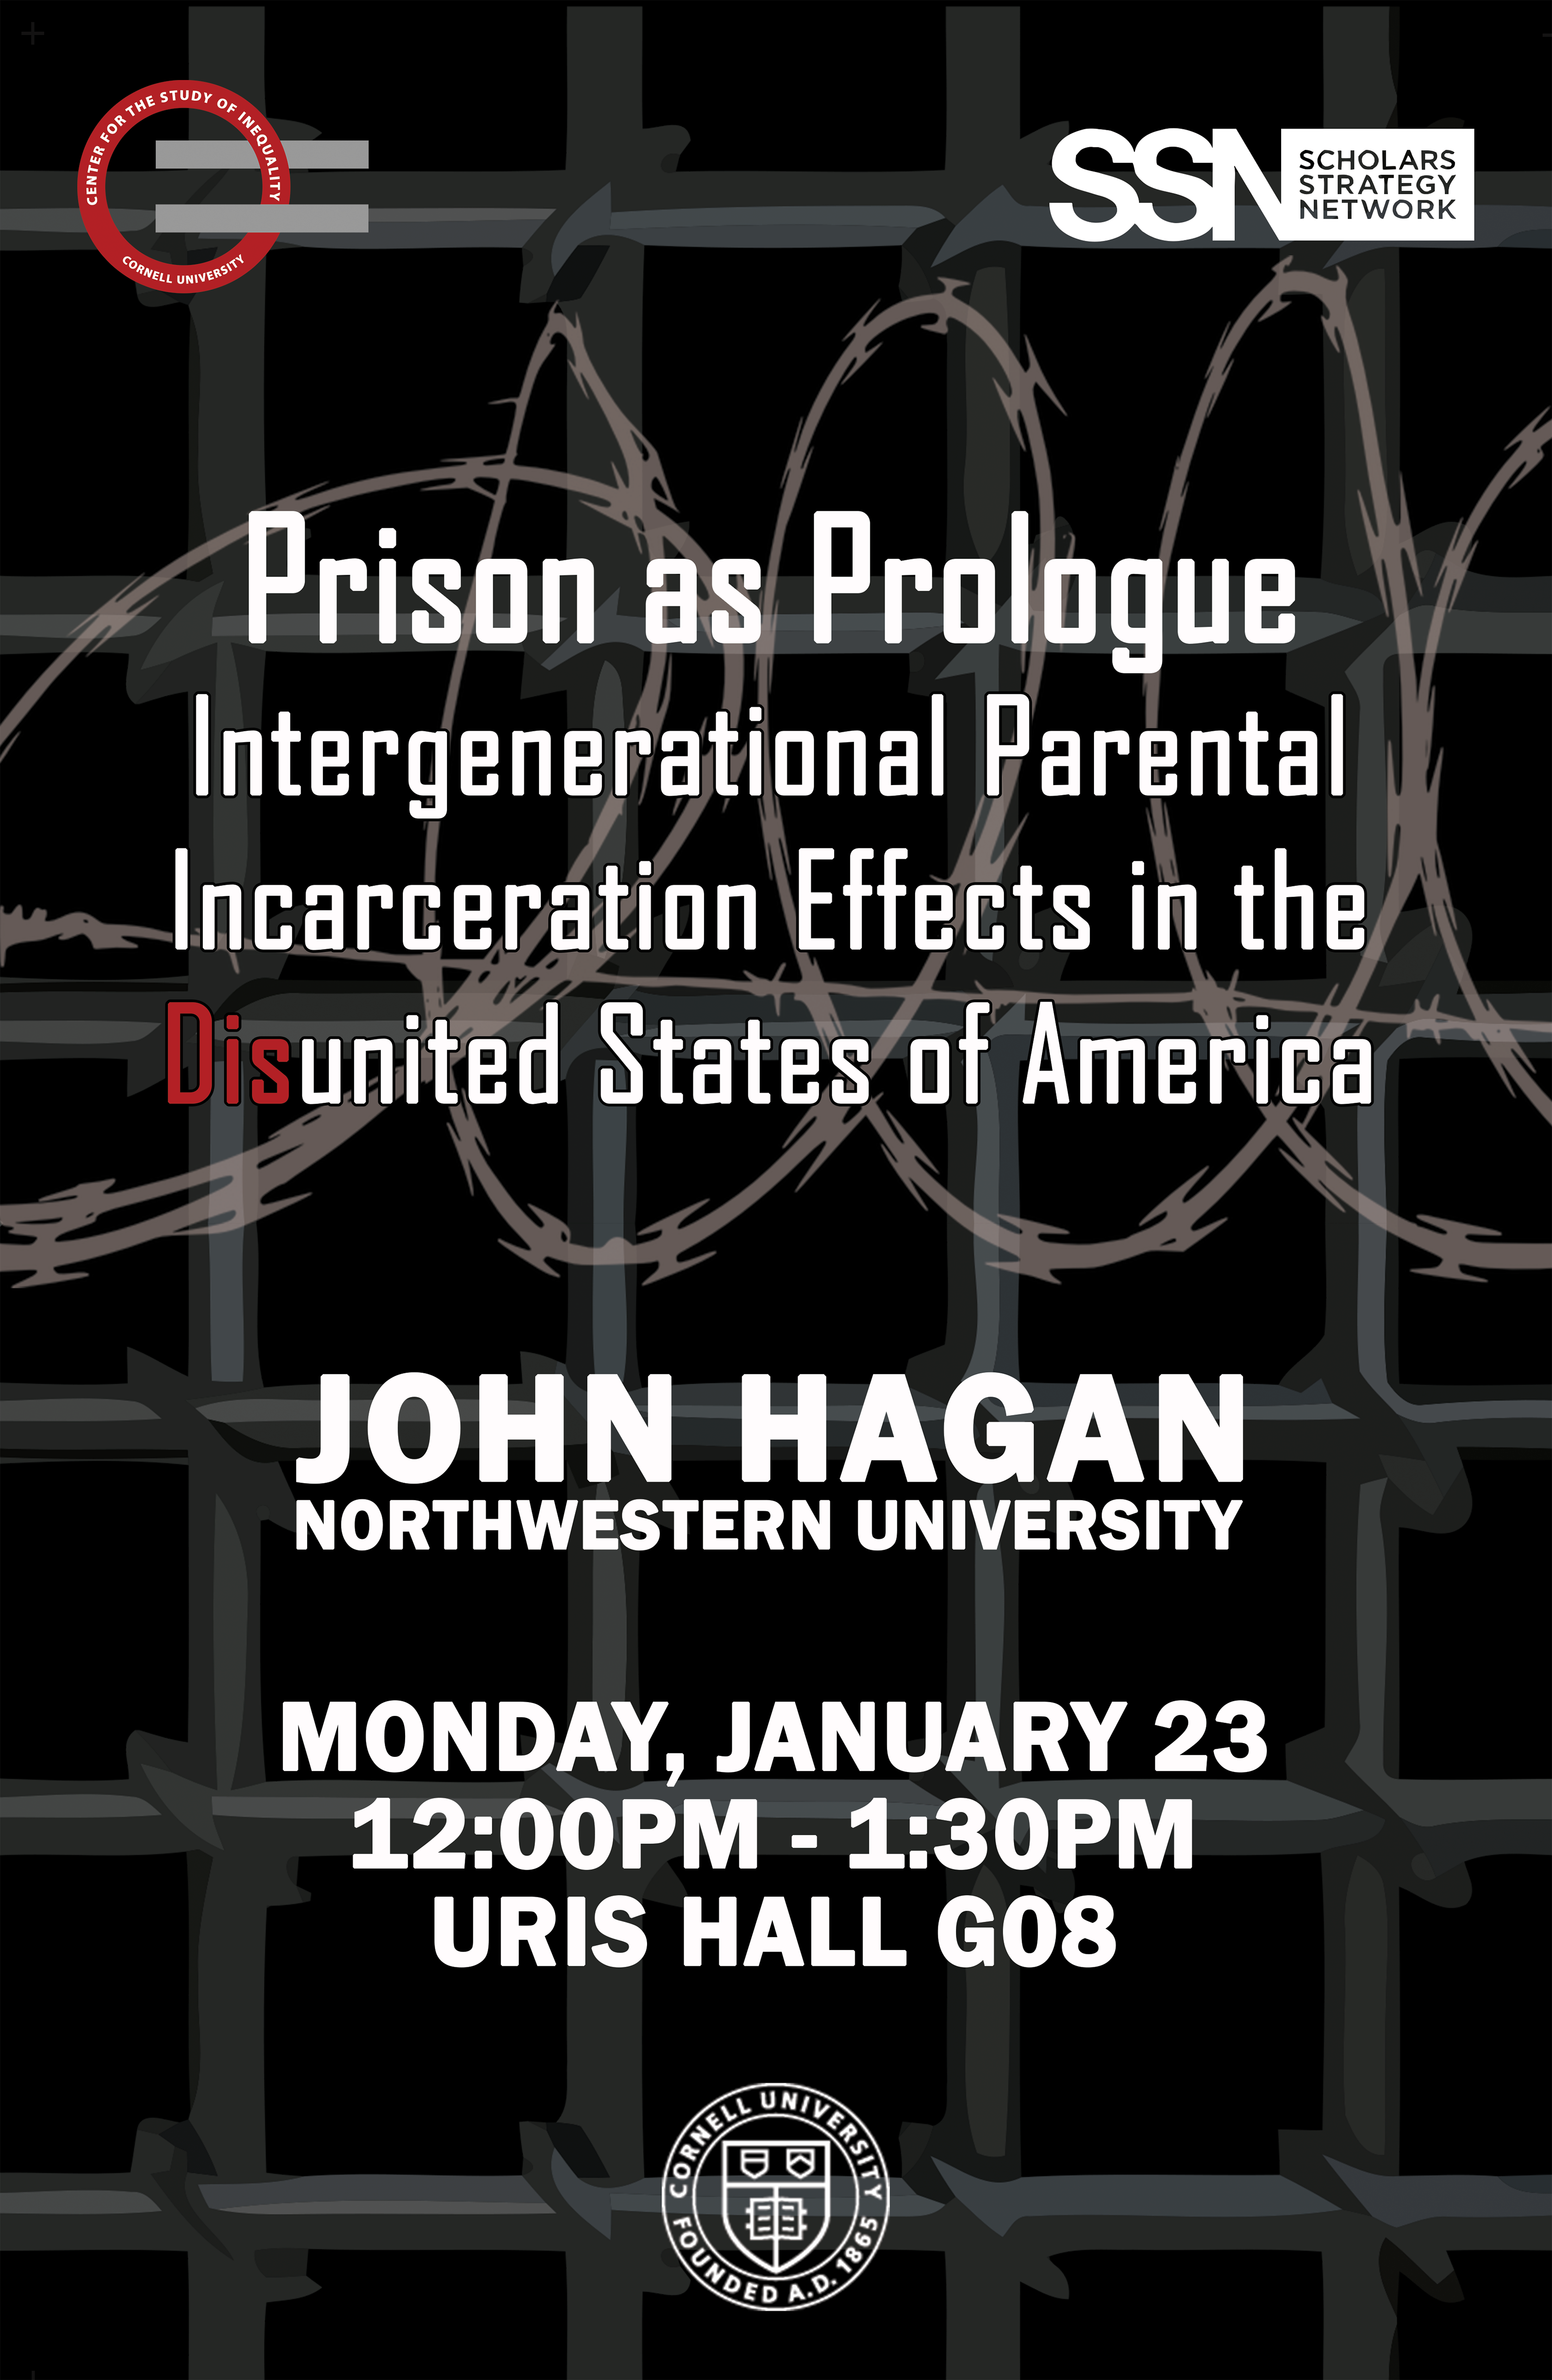 Prison as Prologue: Intergenerational Parental Incarceration Effects in the Disunited States of America